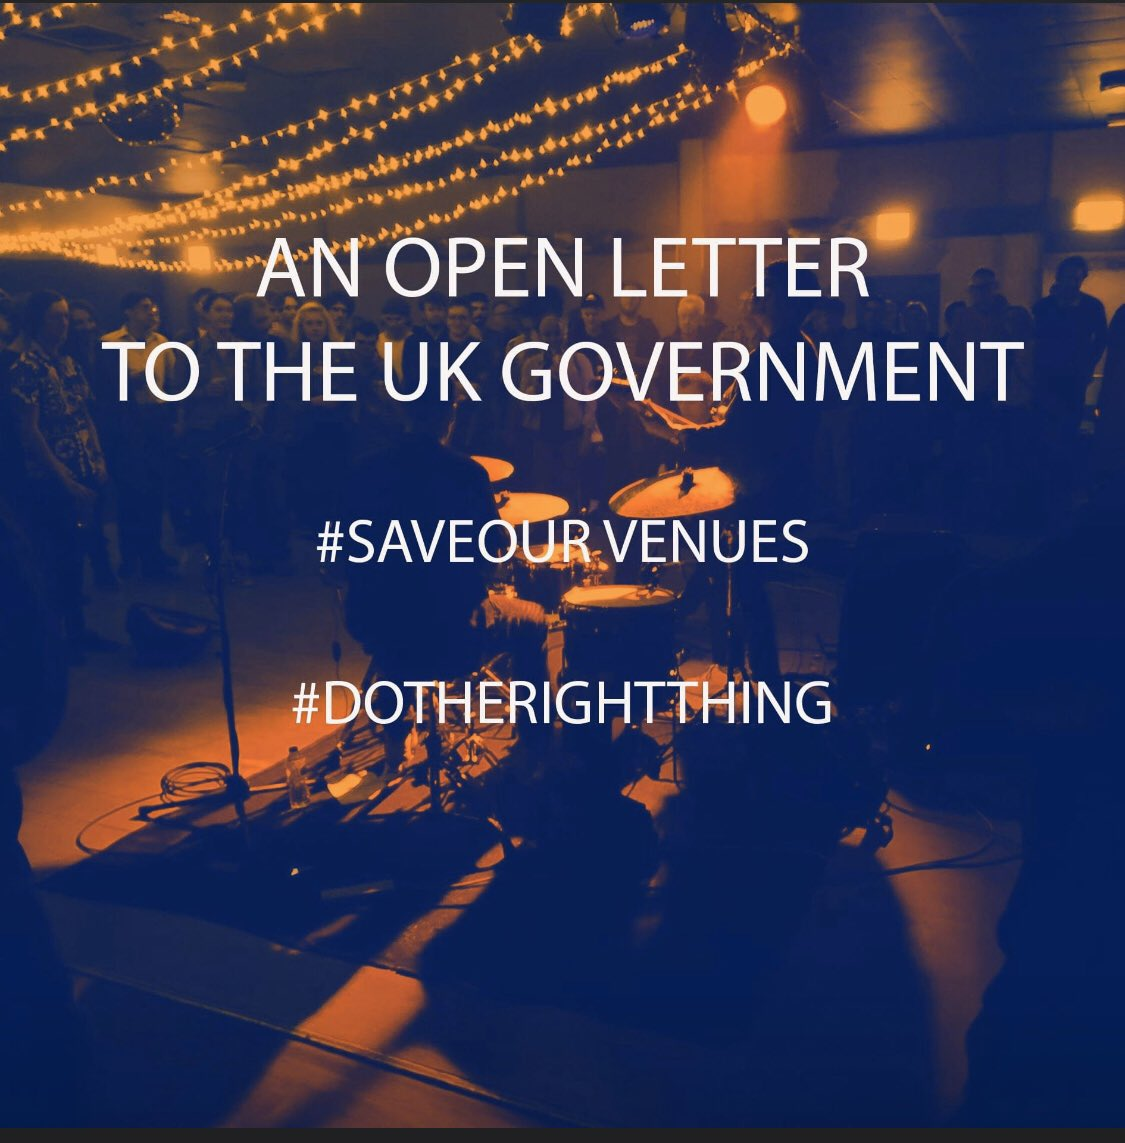 I understand you've been called to speak in tomorrow's debate @CarolineLucas - we desperately need you to speak up for a sector specific deal for grassroots music venues to prevent hundreds of permanent closures #saveourvenues